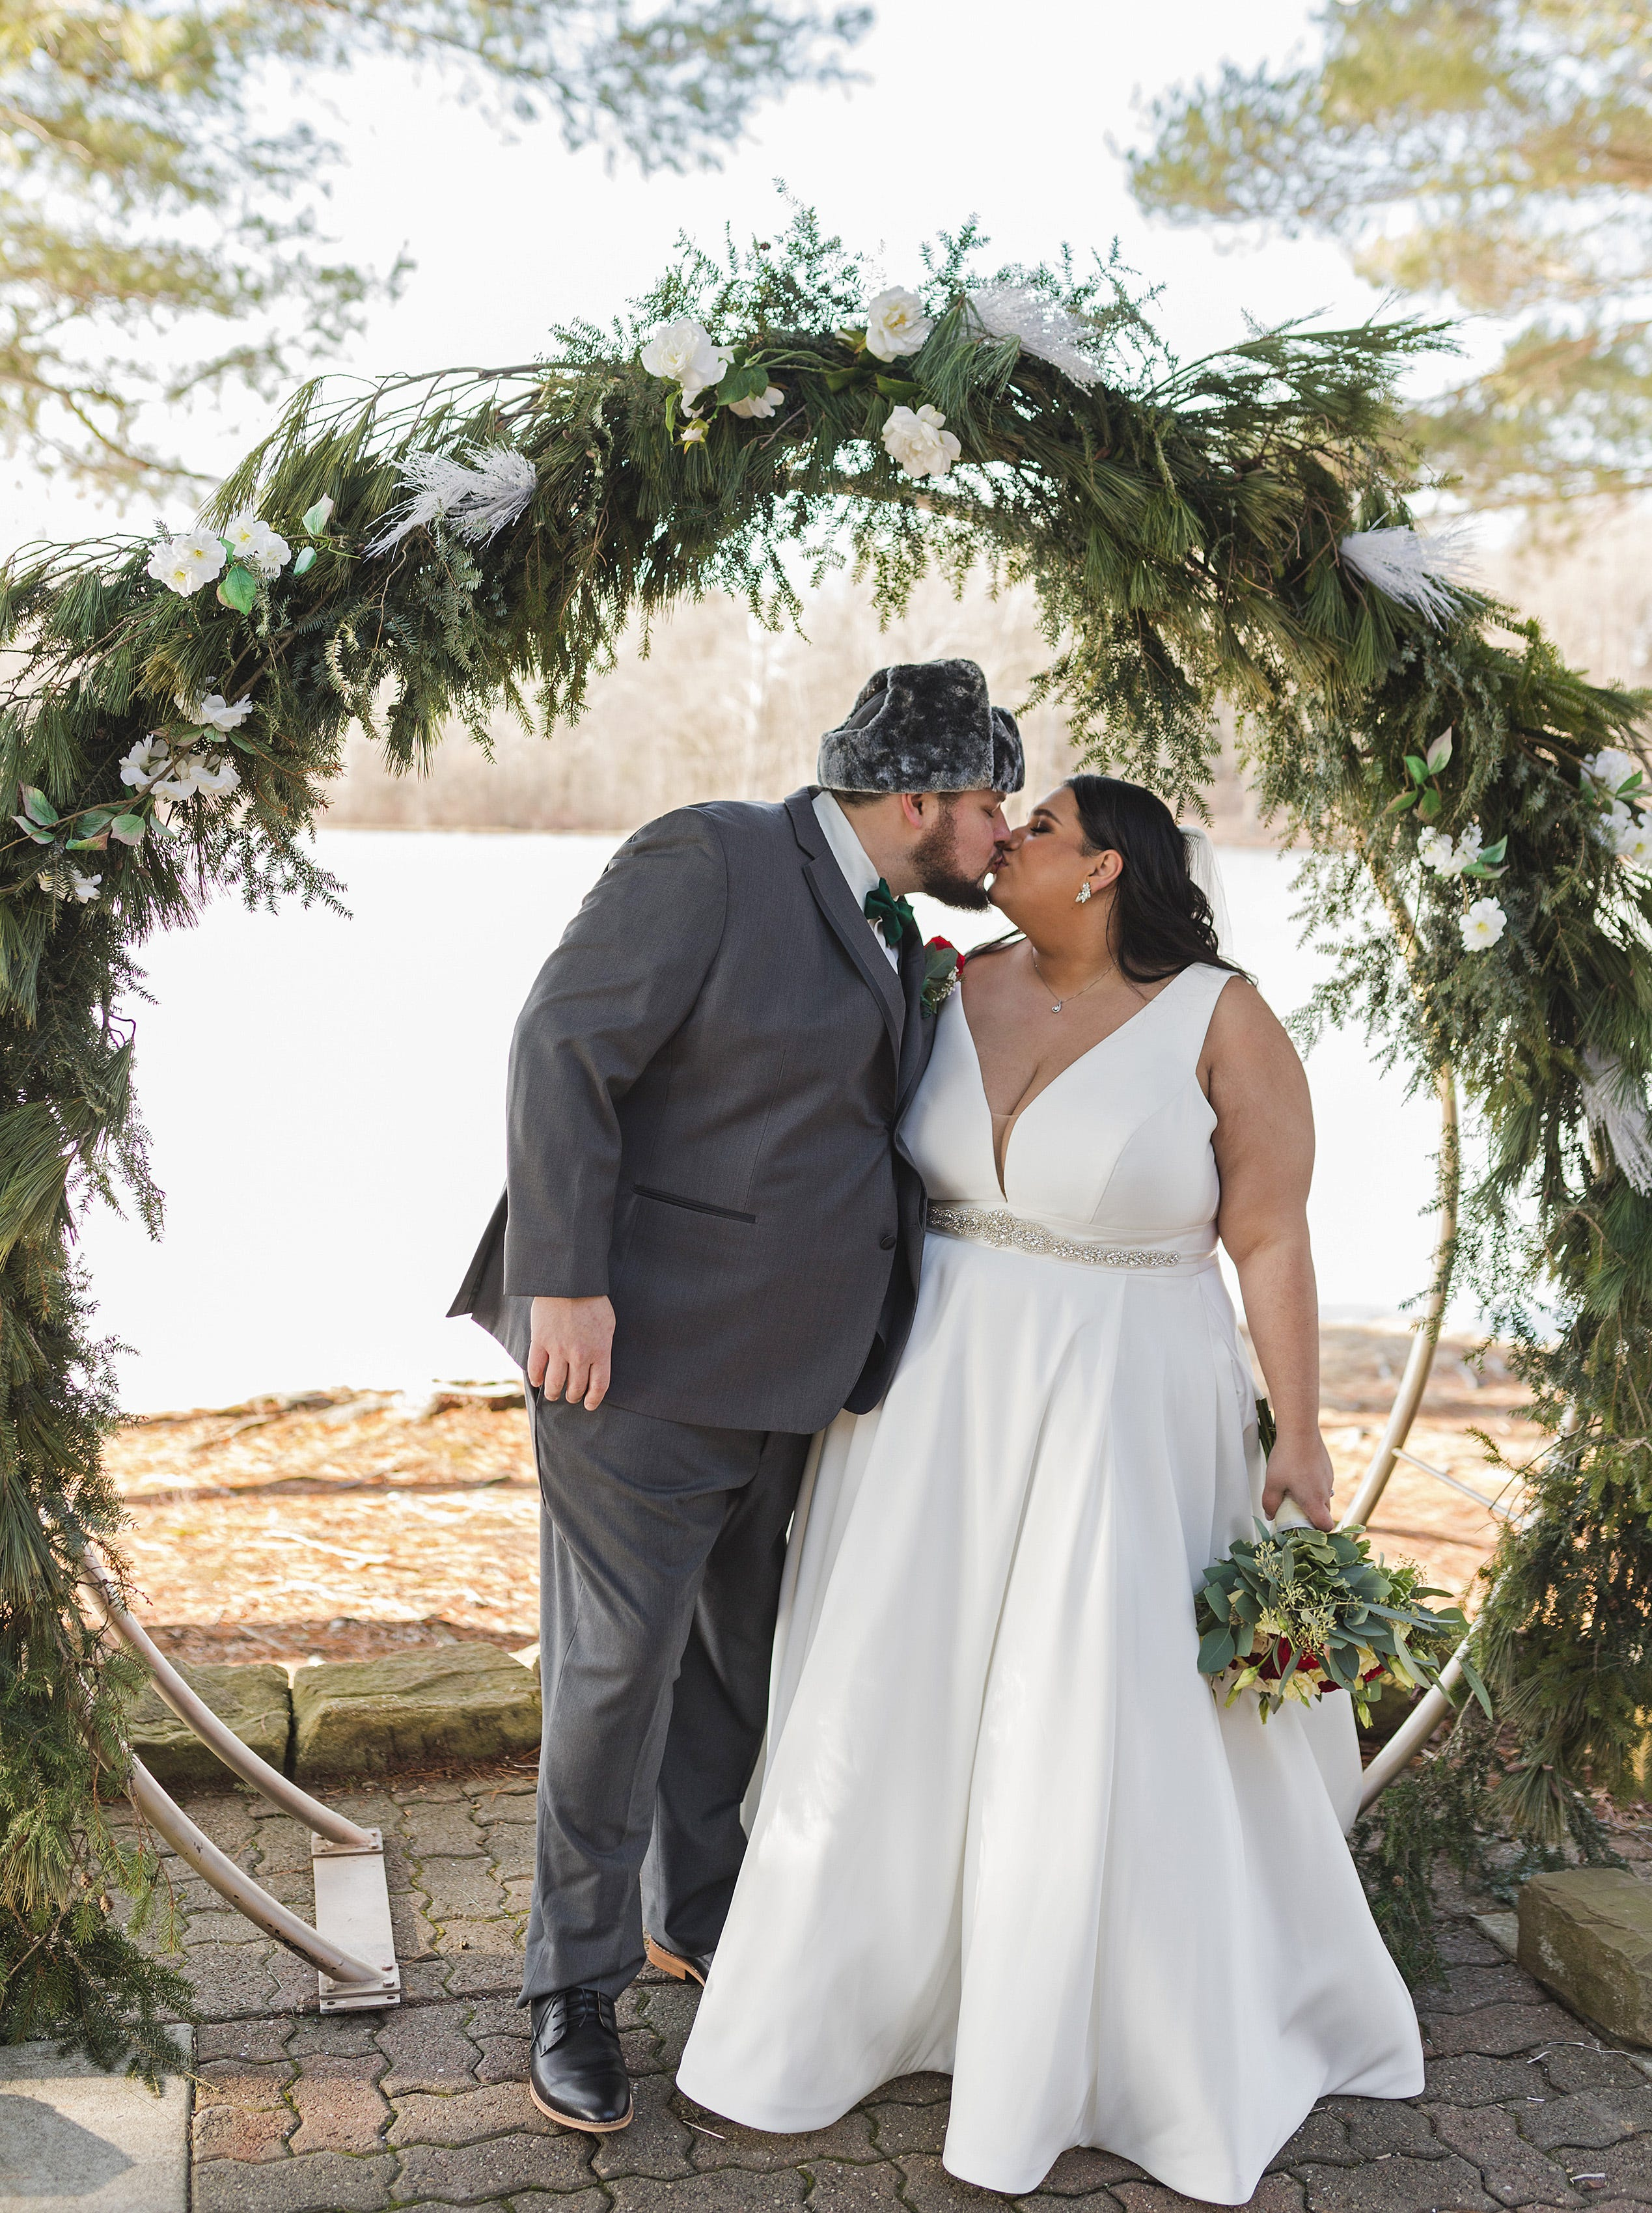 Ethan Walker, left, and Theresa Raydo, married, Jan. 9 at Mitchell Lake near Cambridge Springs. Walker, 28, of Hookstown, Beaver County, and Raydo, 27, of Millcreek Township, Erie County, were both adopted from Russia by different western Pennsylvania families.